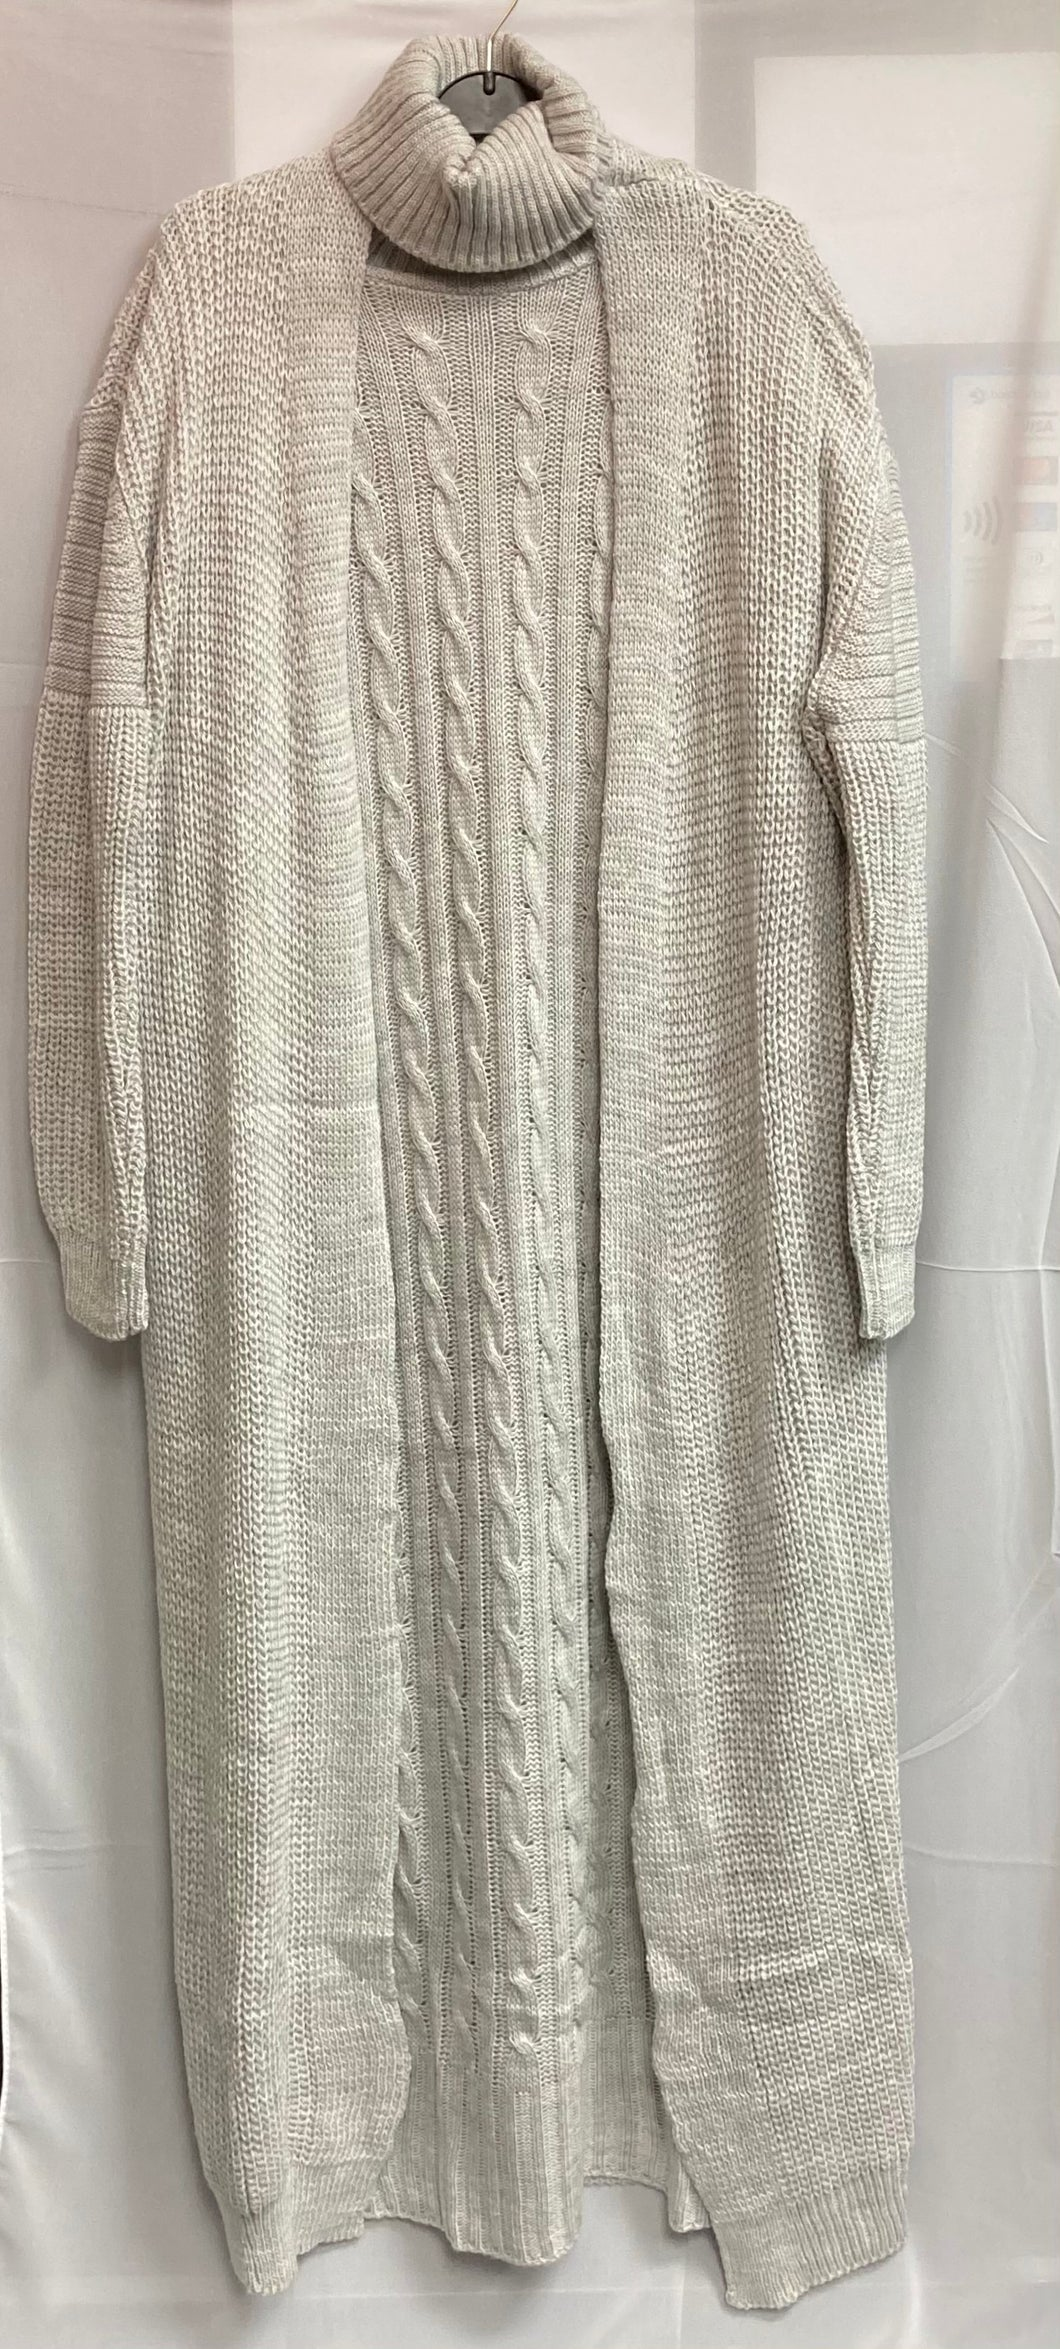 Knitted Dress & Cardigan - Light Grey